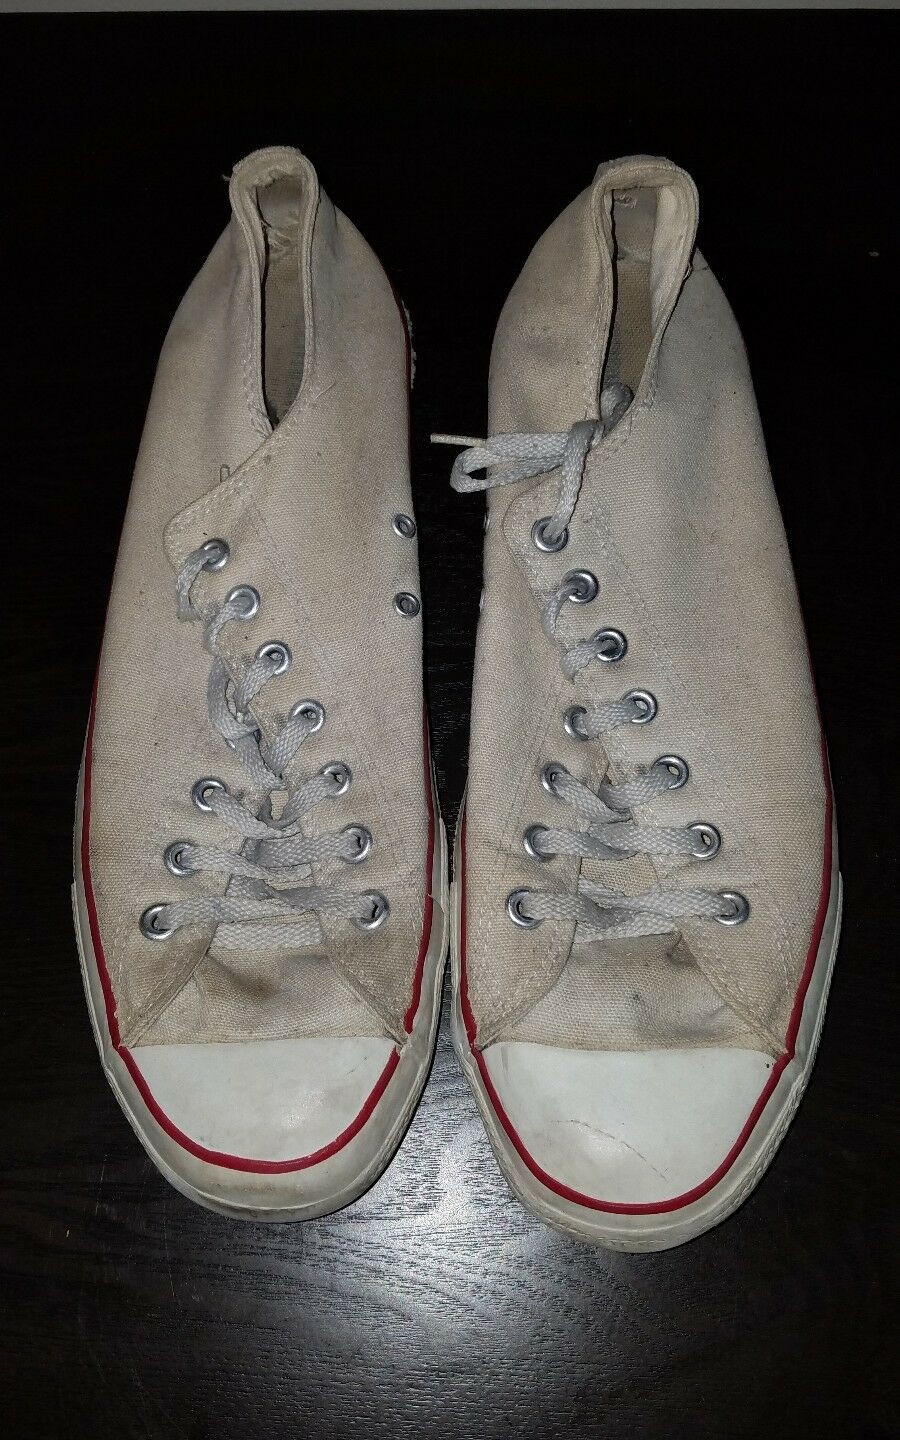 Vintage Converse Chuck Taylor Made In The USA Classic White shoes. Sz 13M